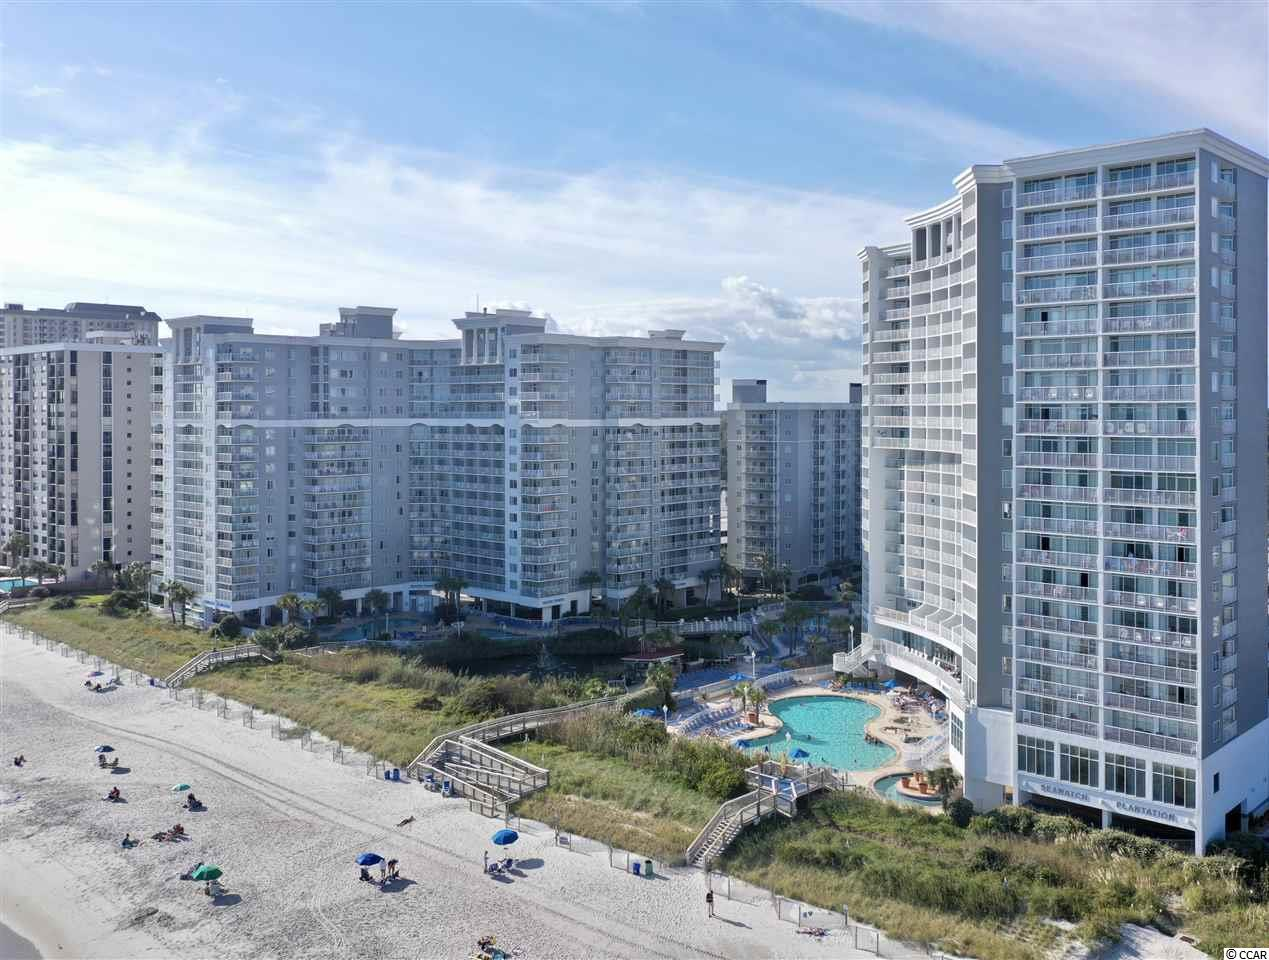 Welcome to Seawatch North Tower where you'll find this highly sought after 1 bedroom Ocean Front Condo. Unit features a King bed in the bedroom, full kitchen, sleeper sofa and a beautiful view of the Atlantic Ocean from the balcony. Resort amenities include 6 swimming pools including a indoor pool, hot tubs, seasonal tiki bar, play ground, lazy river and so much more. Call today to view this great unit before it's gone. All measurements and information are to be verified by buyer